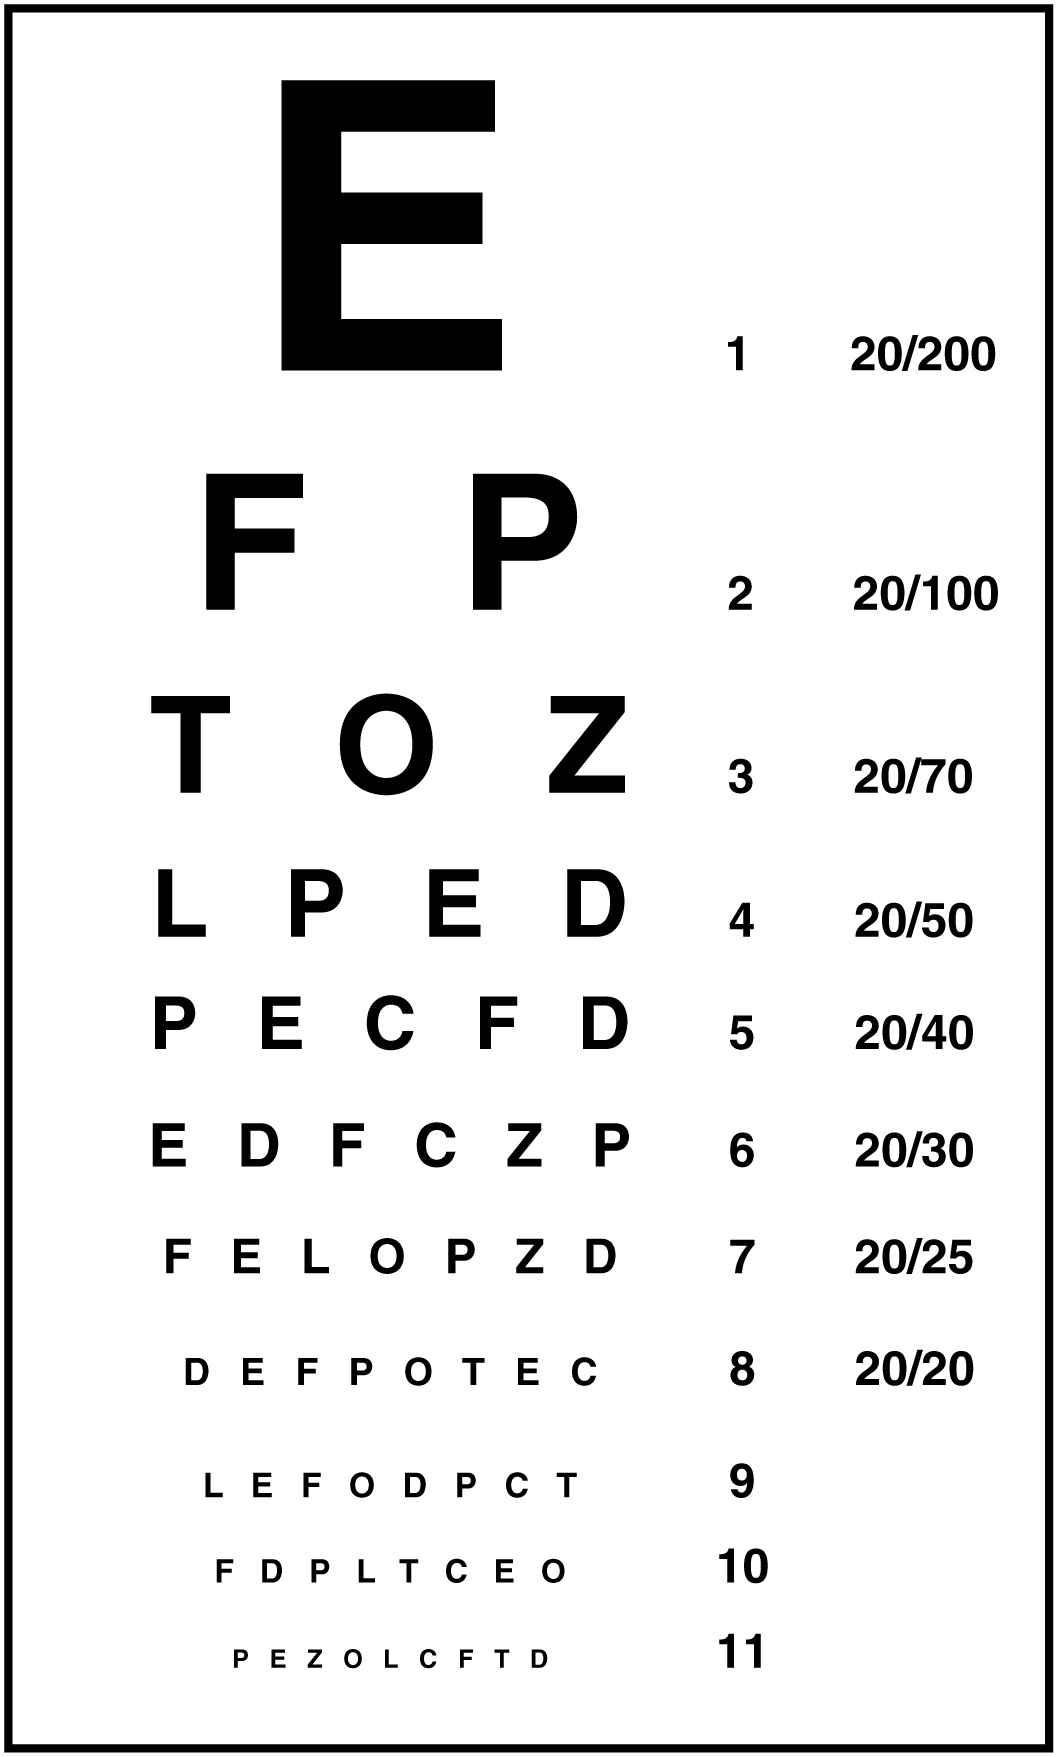 100 Chart Worksheet With Missing Numbers: 1606 Snellen Chart-02.jpg - Wikimedia Commons,Chart